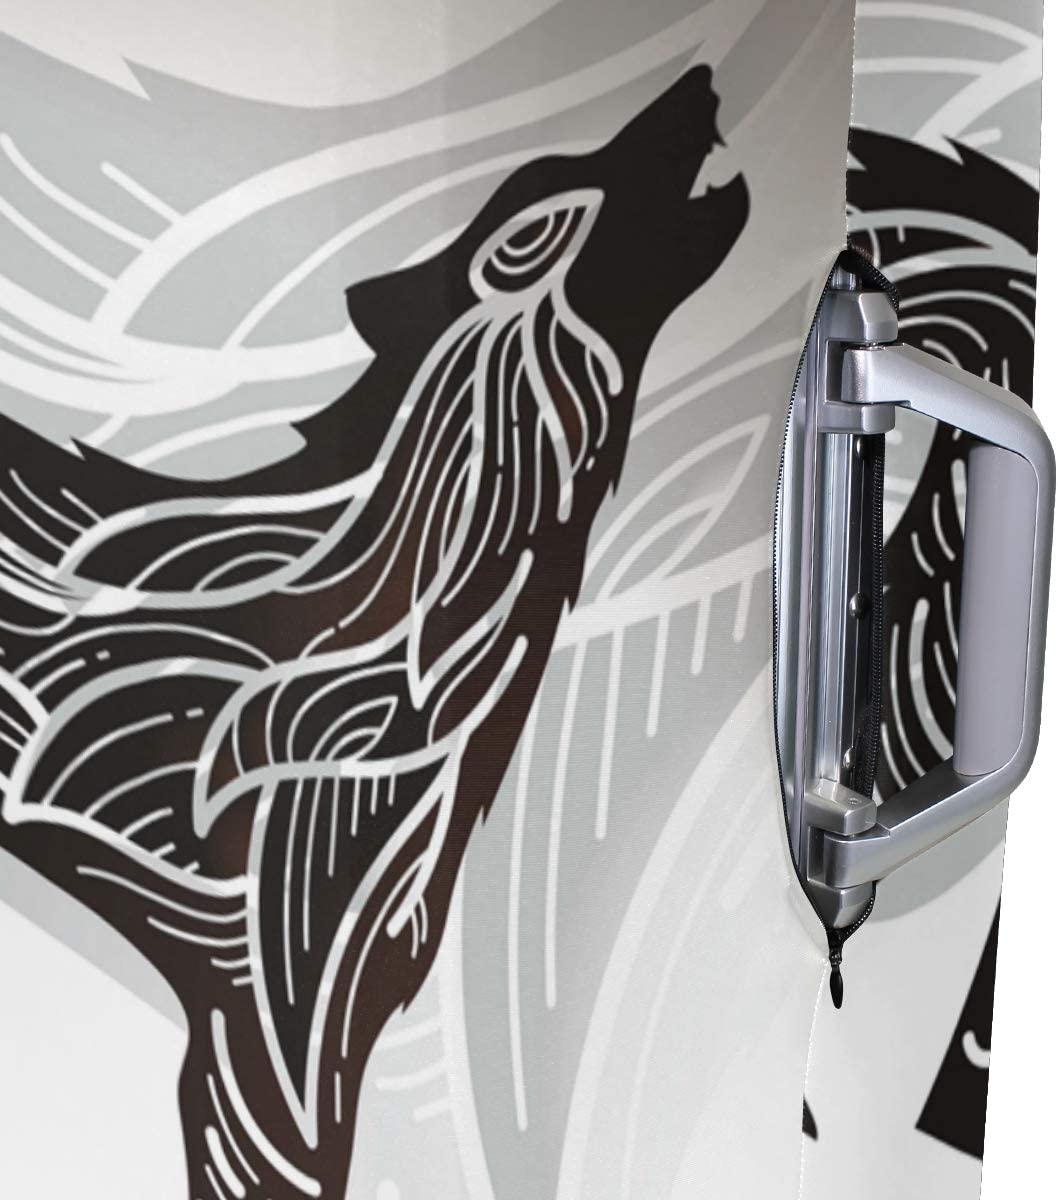 LEISISI Howling Wolf Shadow Puppet Luggage Cover Elastic Protector Fits XL 29-32 in Suitcase